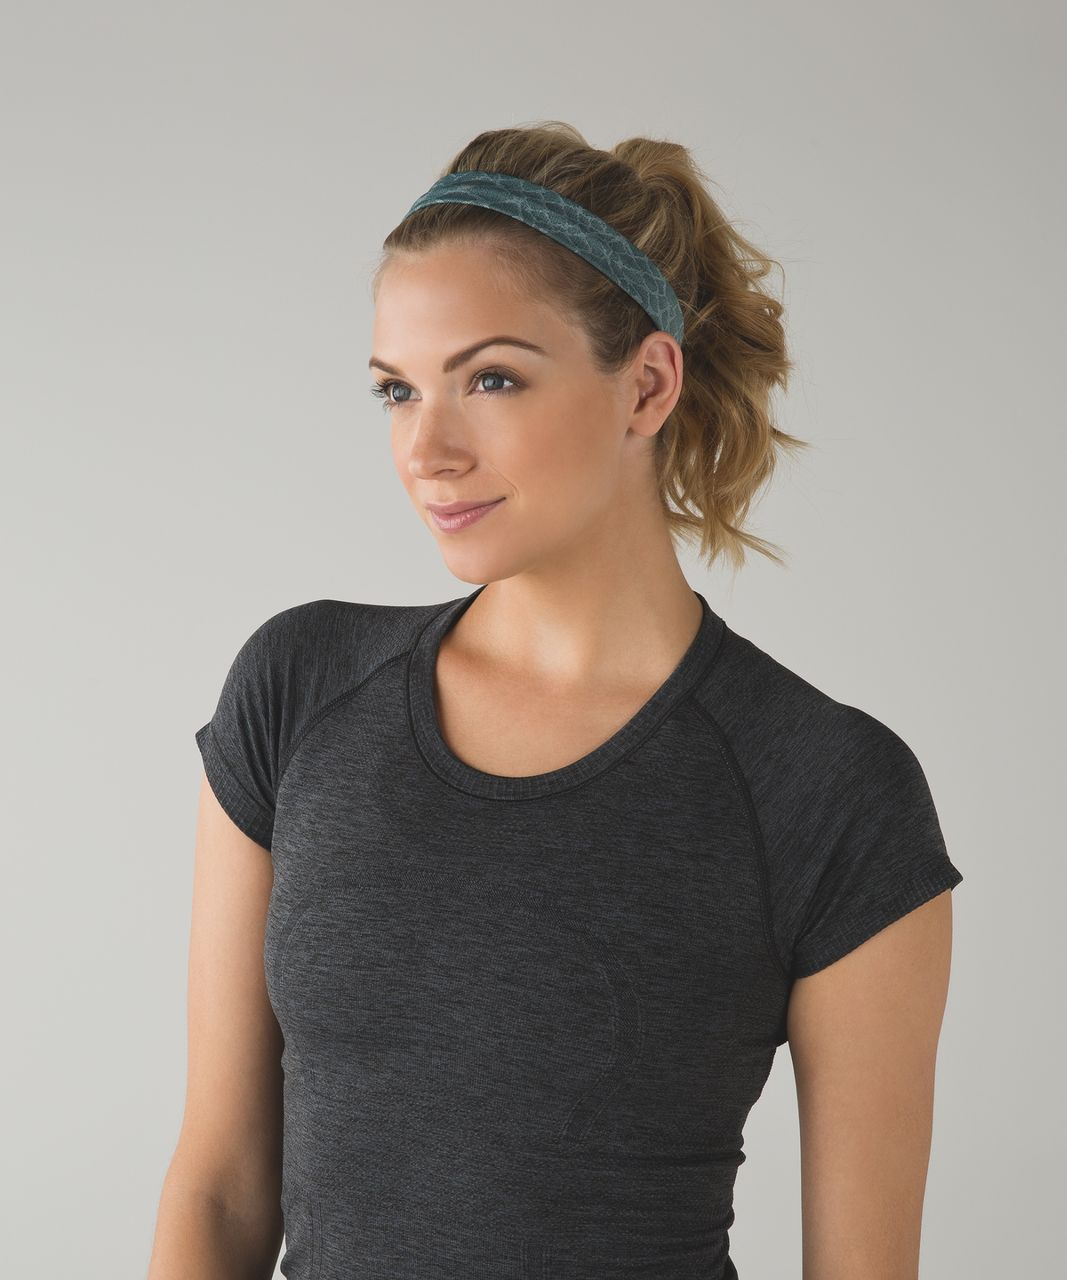 Lululemon Cardio Cross Trainer Headband - Heathered Deep Green